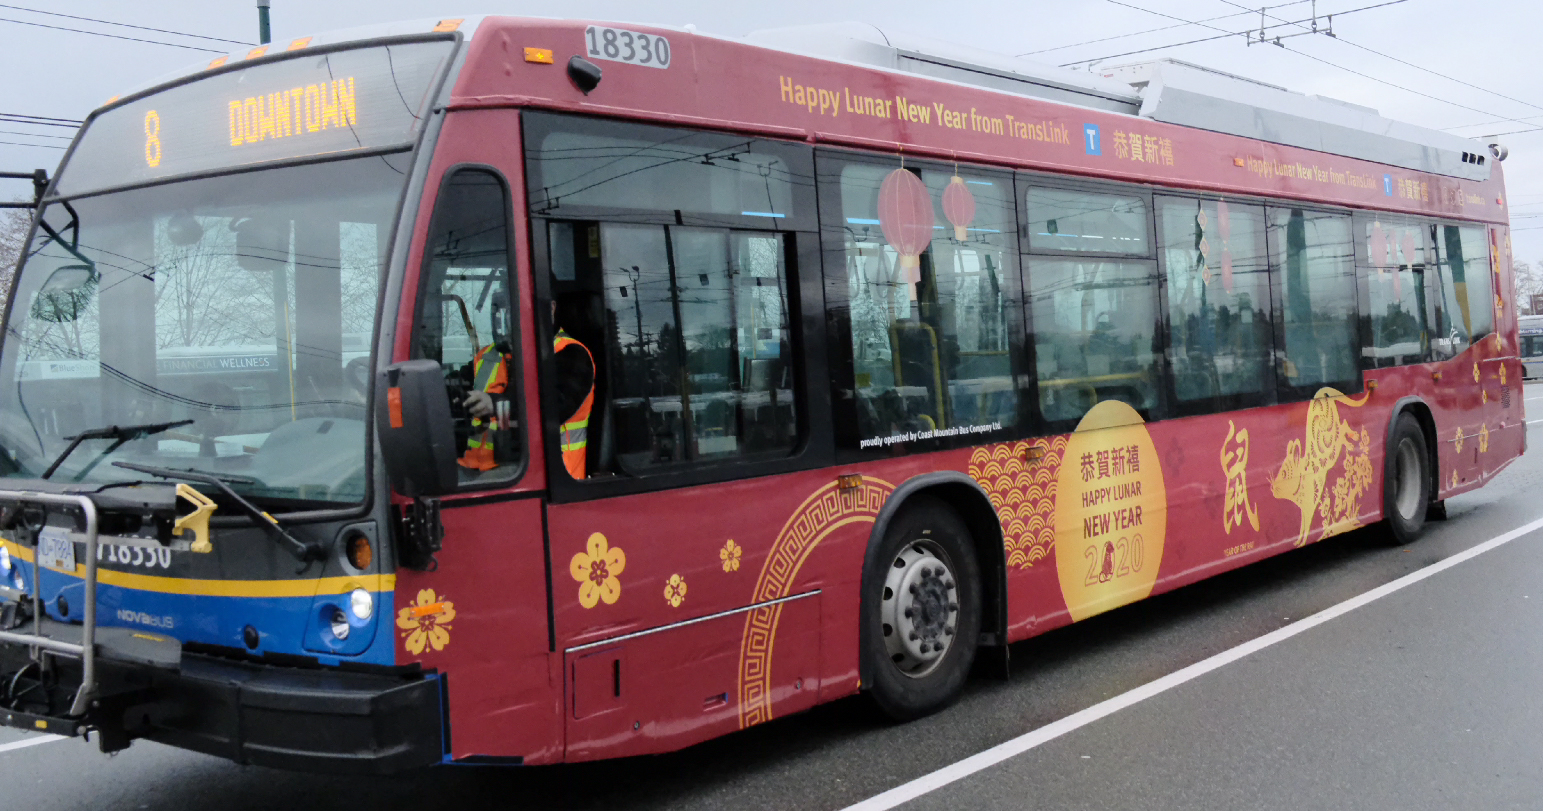 The Lunar New Year-wrapped bus will make its debut at the Vancouver Chinatown Spring Festival Parade and will start serving customers this coming Monday.